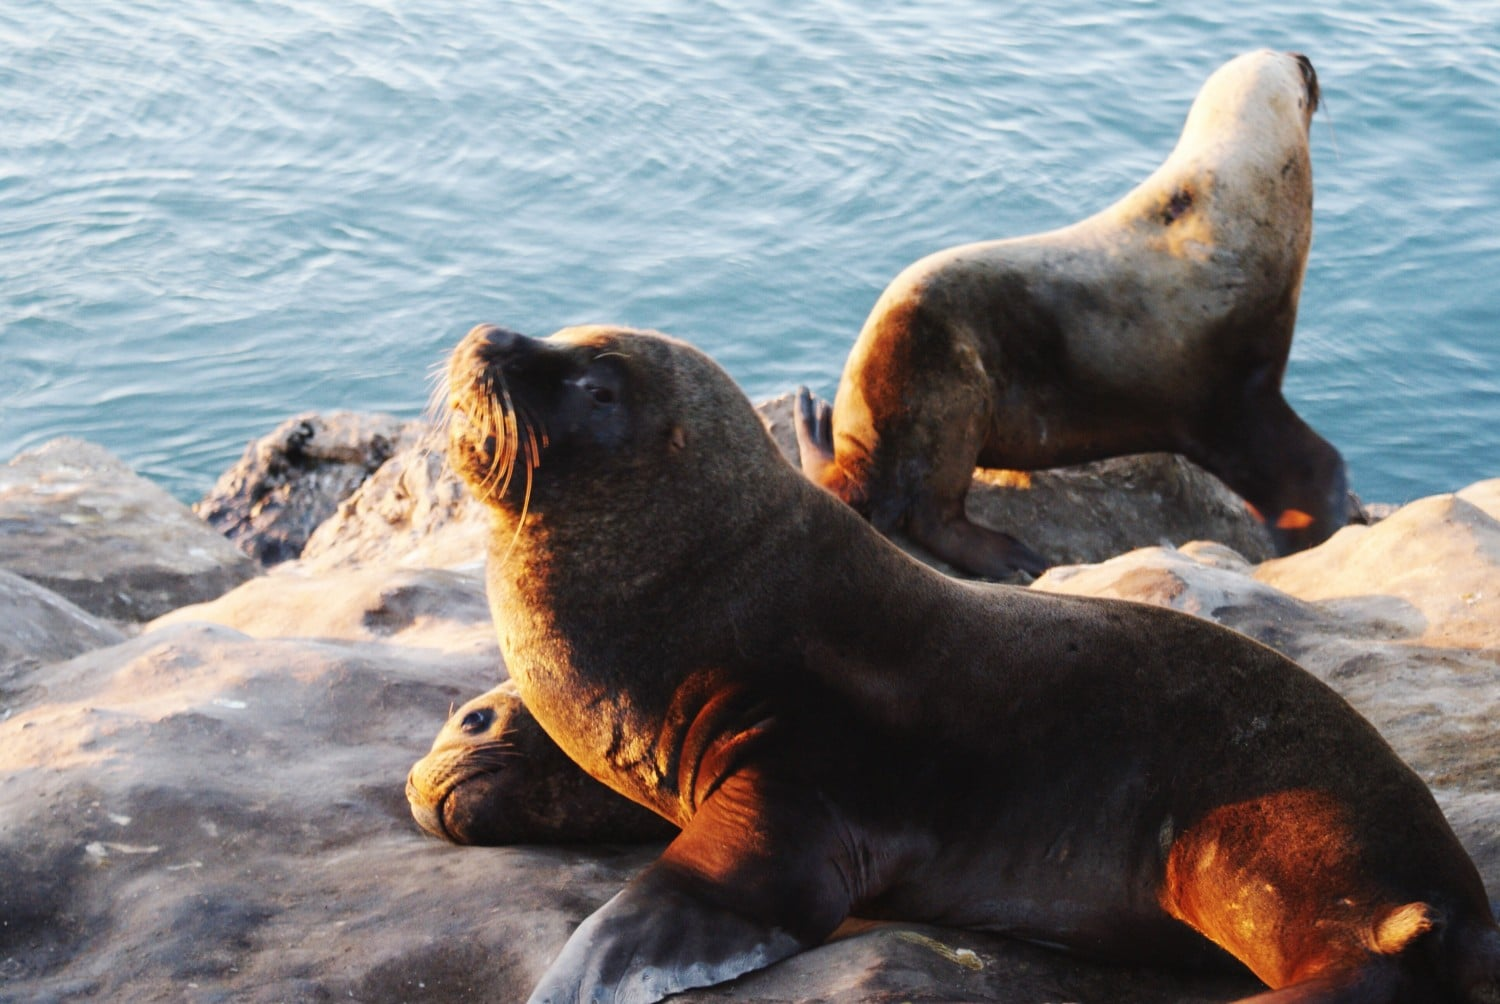 Sea Lions in Mar de Plata